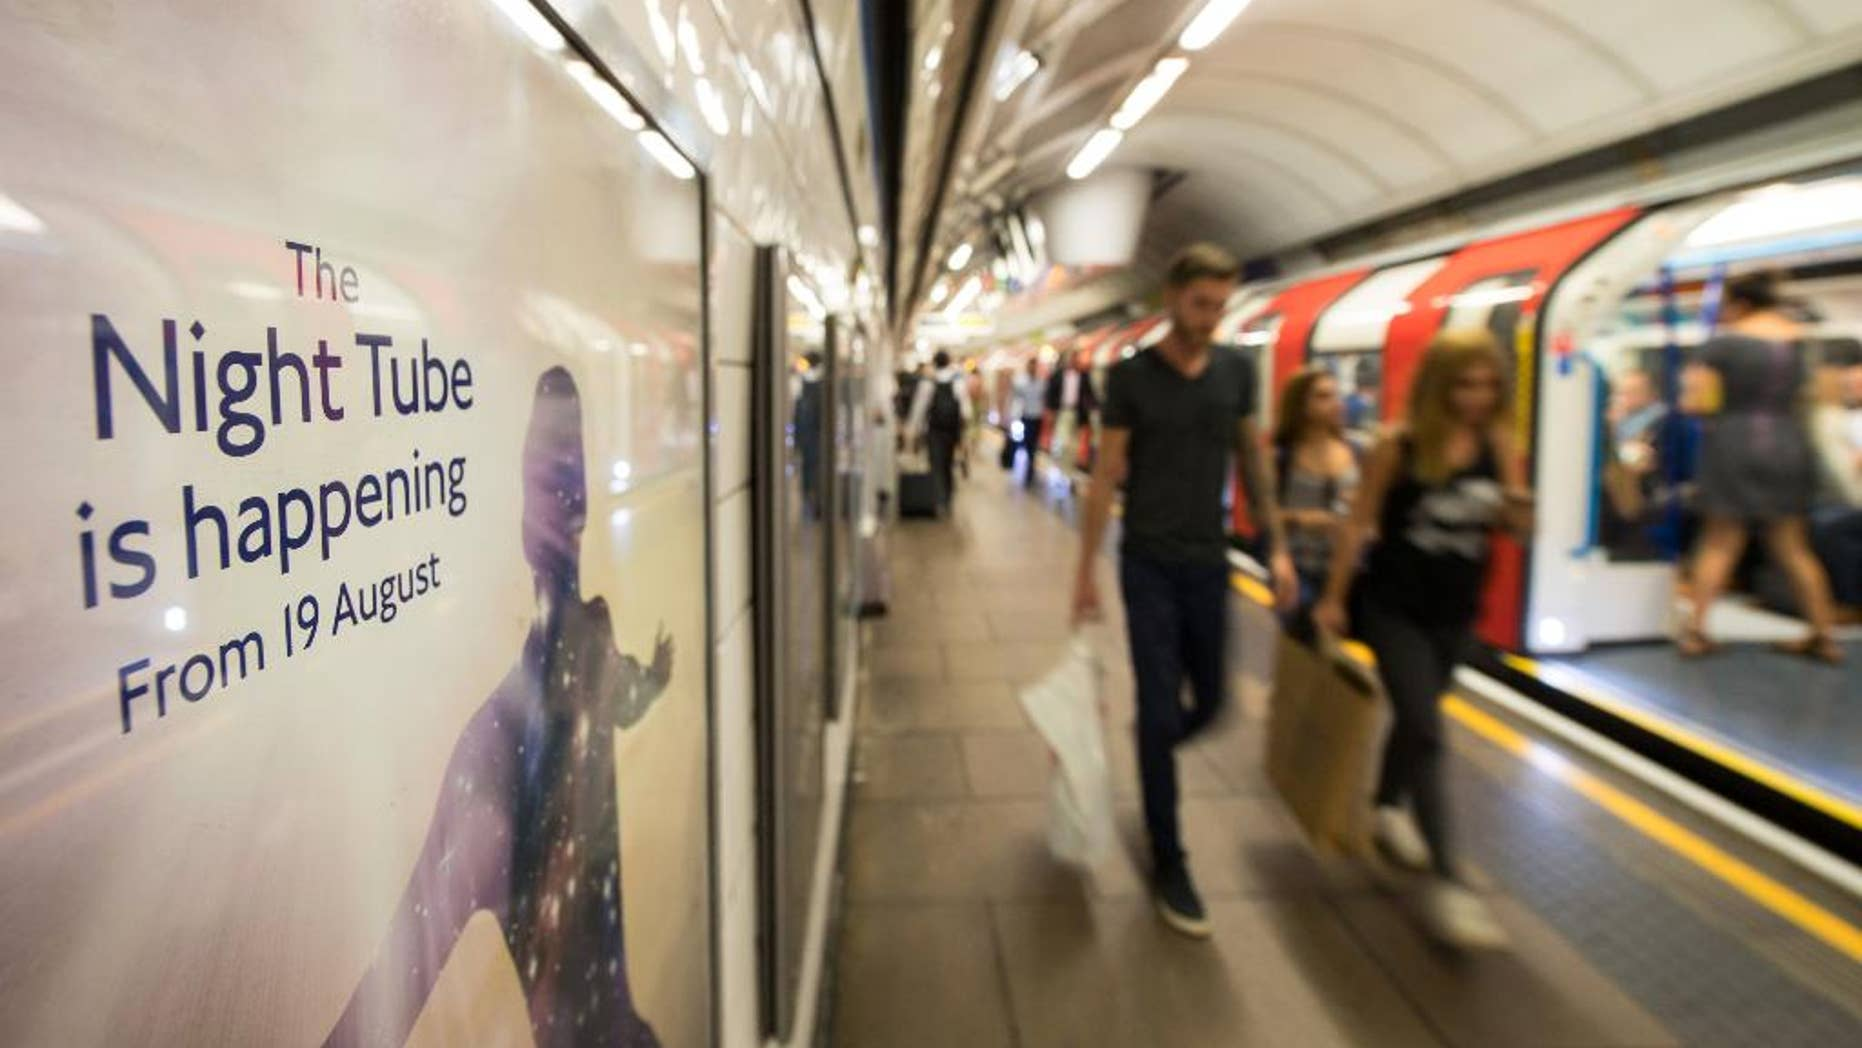 Passengers pass an advert for the night tube on a platform at Oxford Circus underground (tube) station, in London, Wednesday August 17, 2016.  The London underground launches a 'Night Tube' service for the London mass transport system on Friday August 19. (Dominic Lipinski / PA via AP)